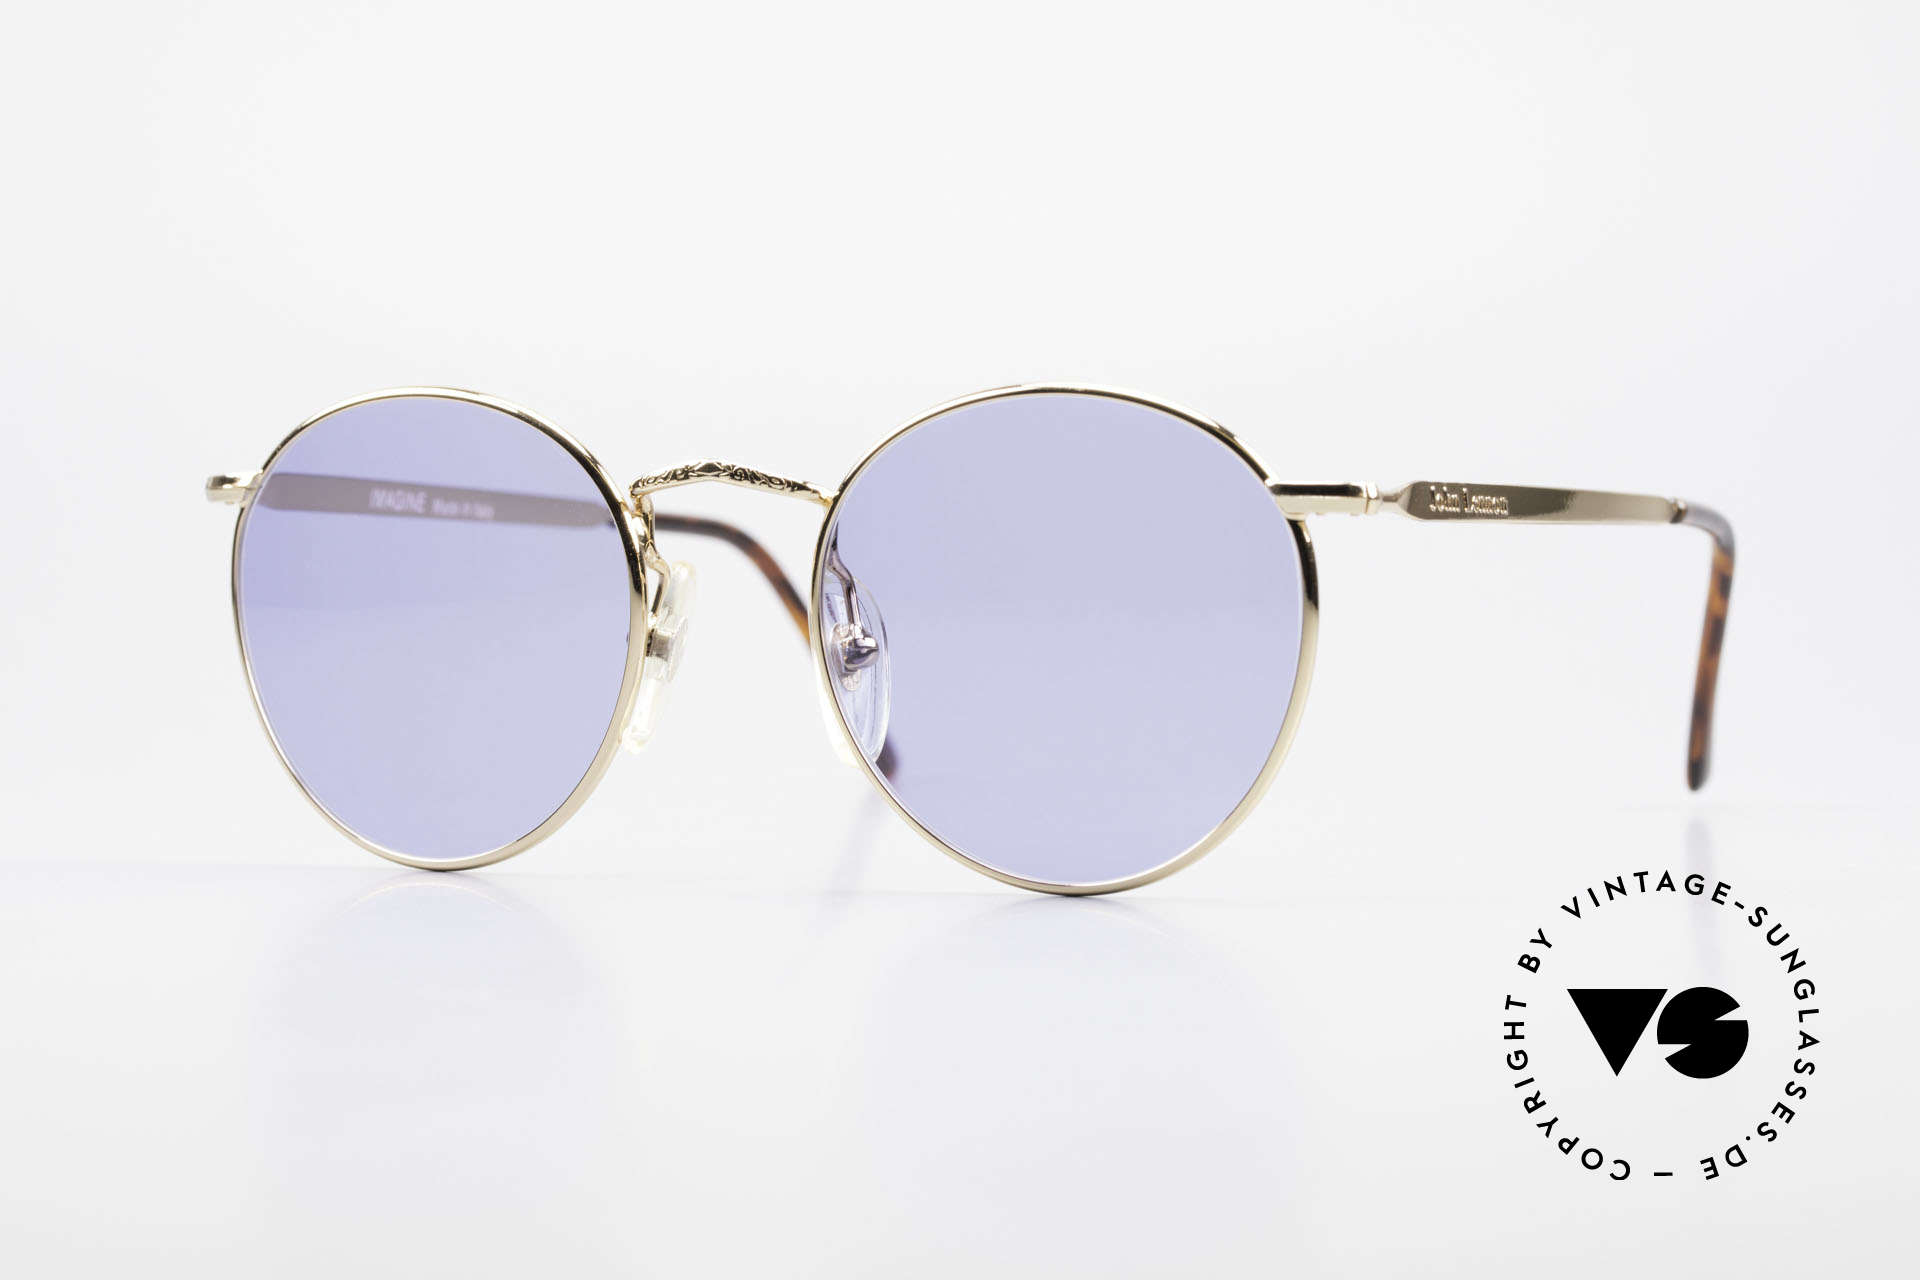 John Lennon - Imagine Original John Lennon Glasses, model 'IMAGINE': panto sunglasses in small 49mm size, Made for Men and Women